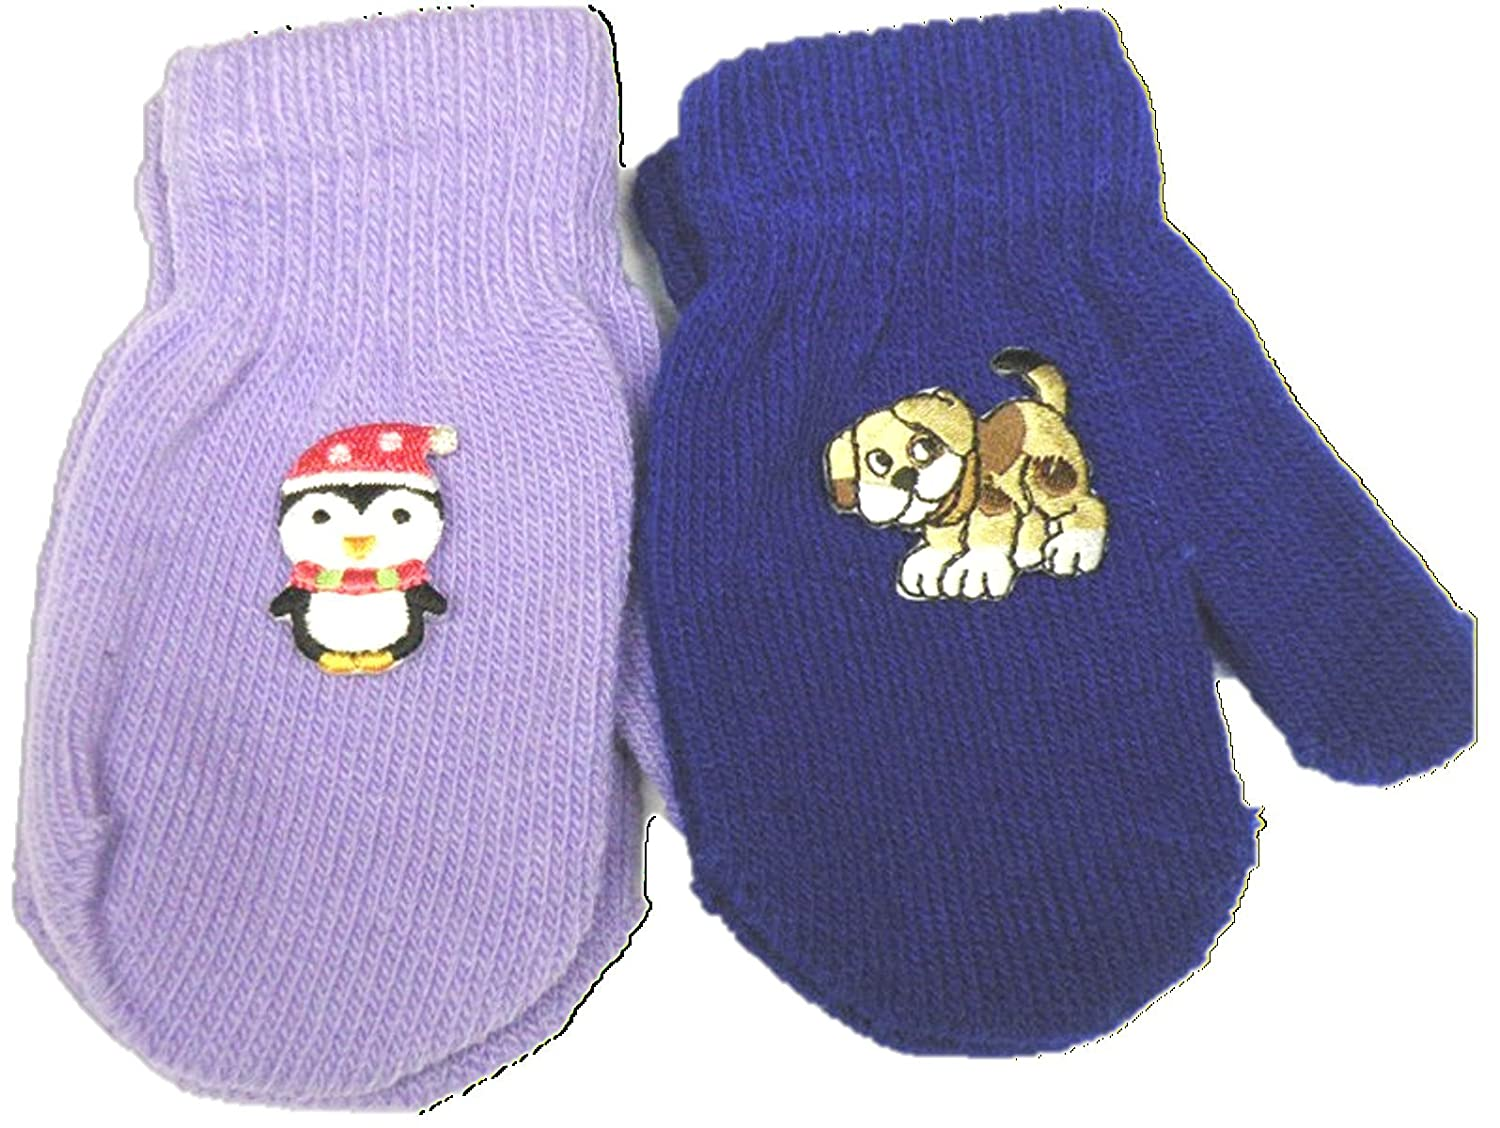 Set of Two Pairs Magic Mittens for Infants with Appliques for Ages 6-24 Months